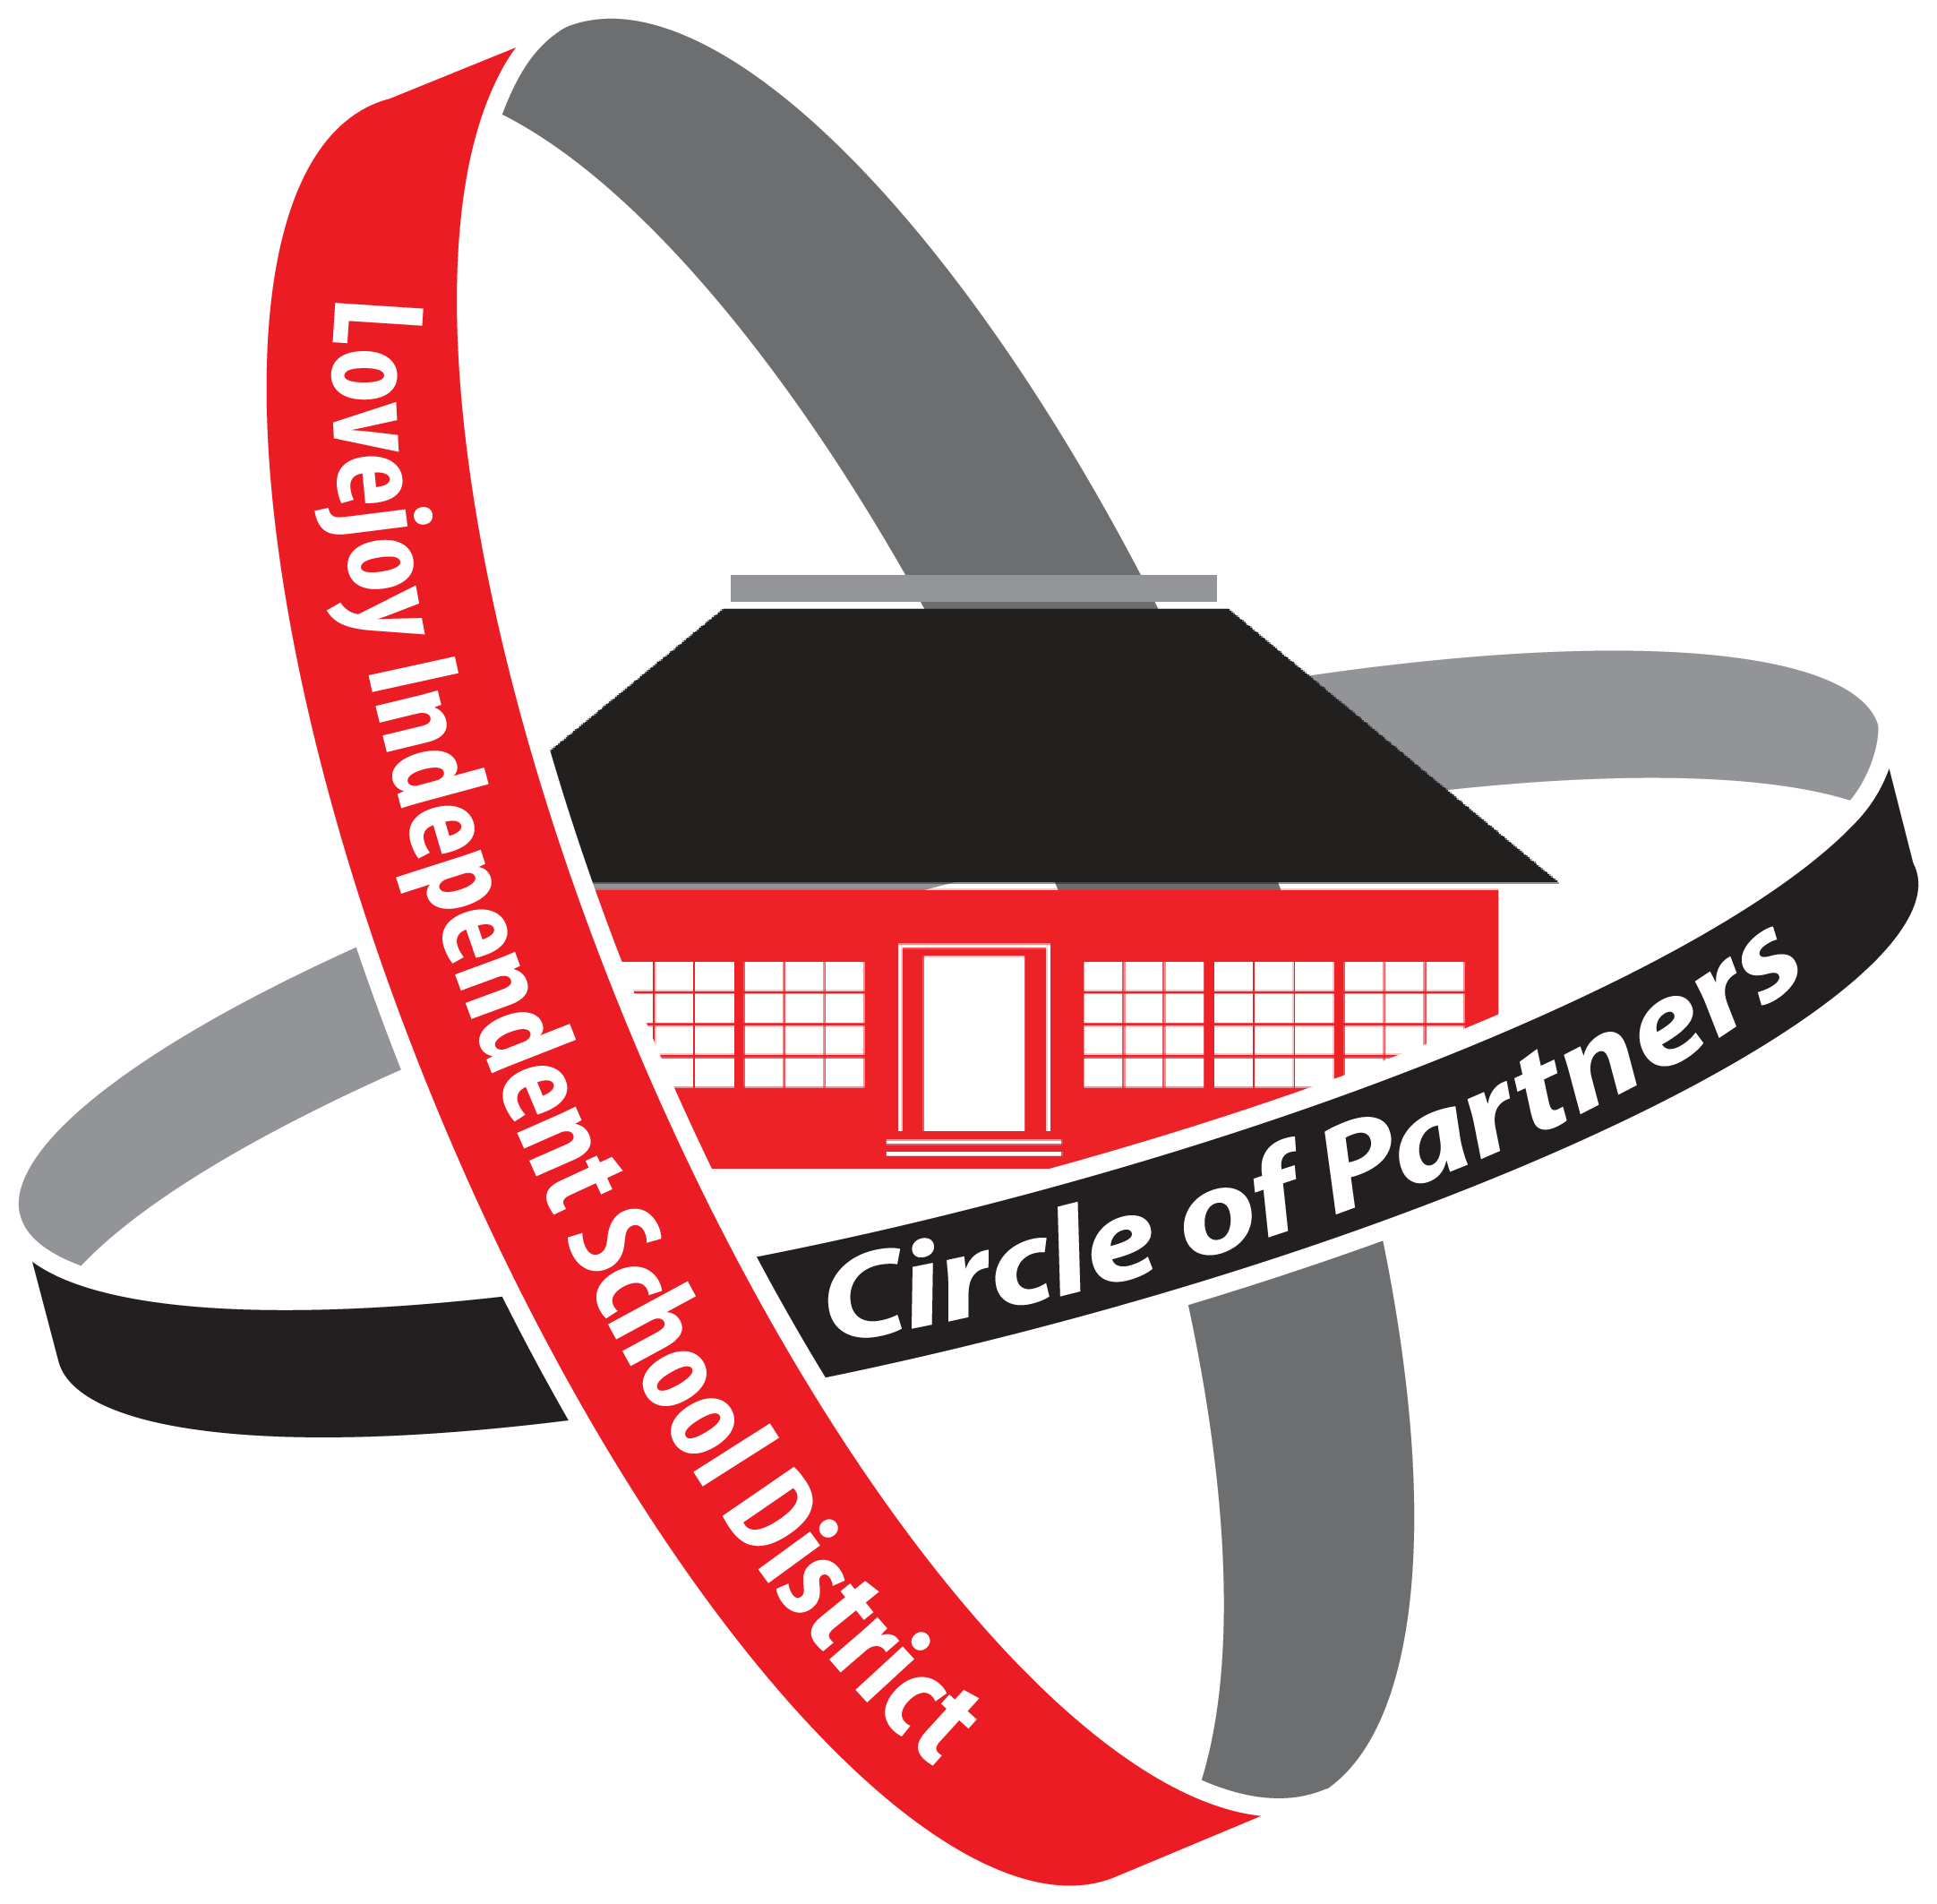 Circle of Partners Logo1.png